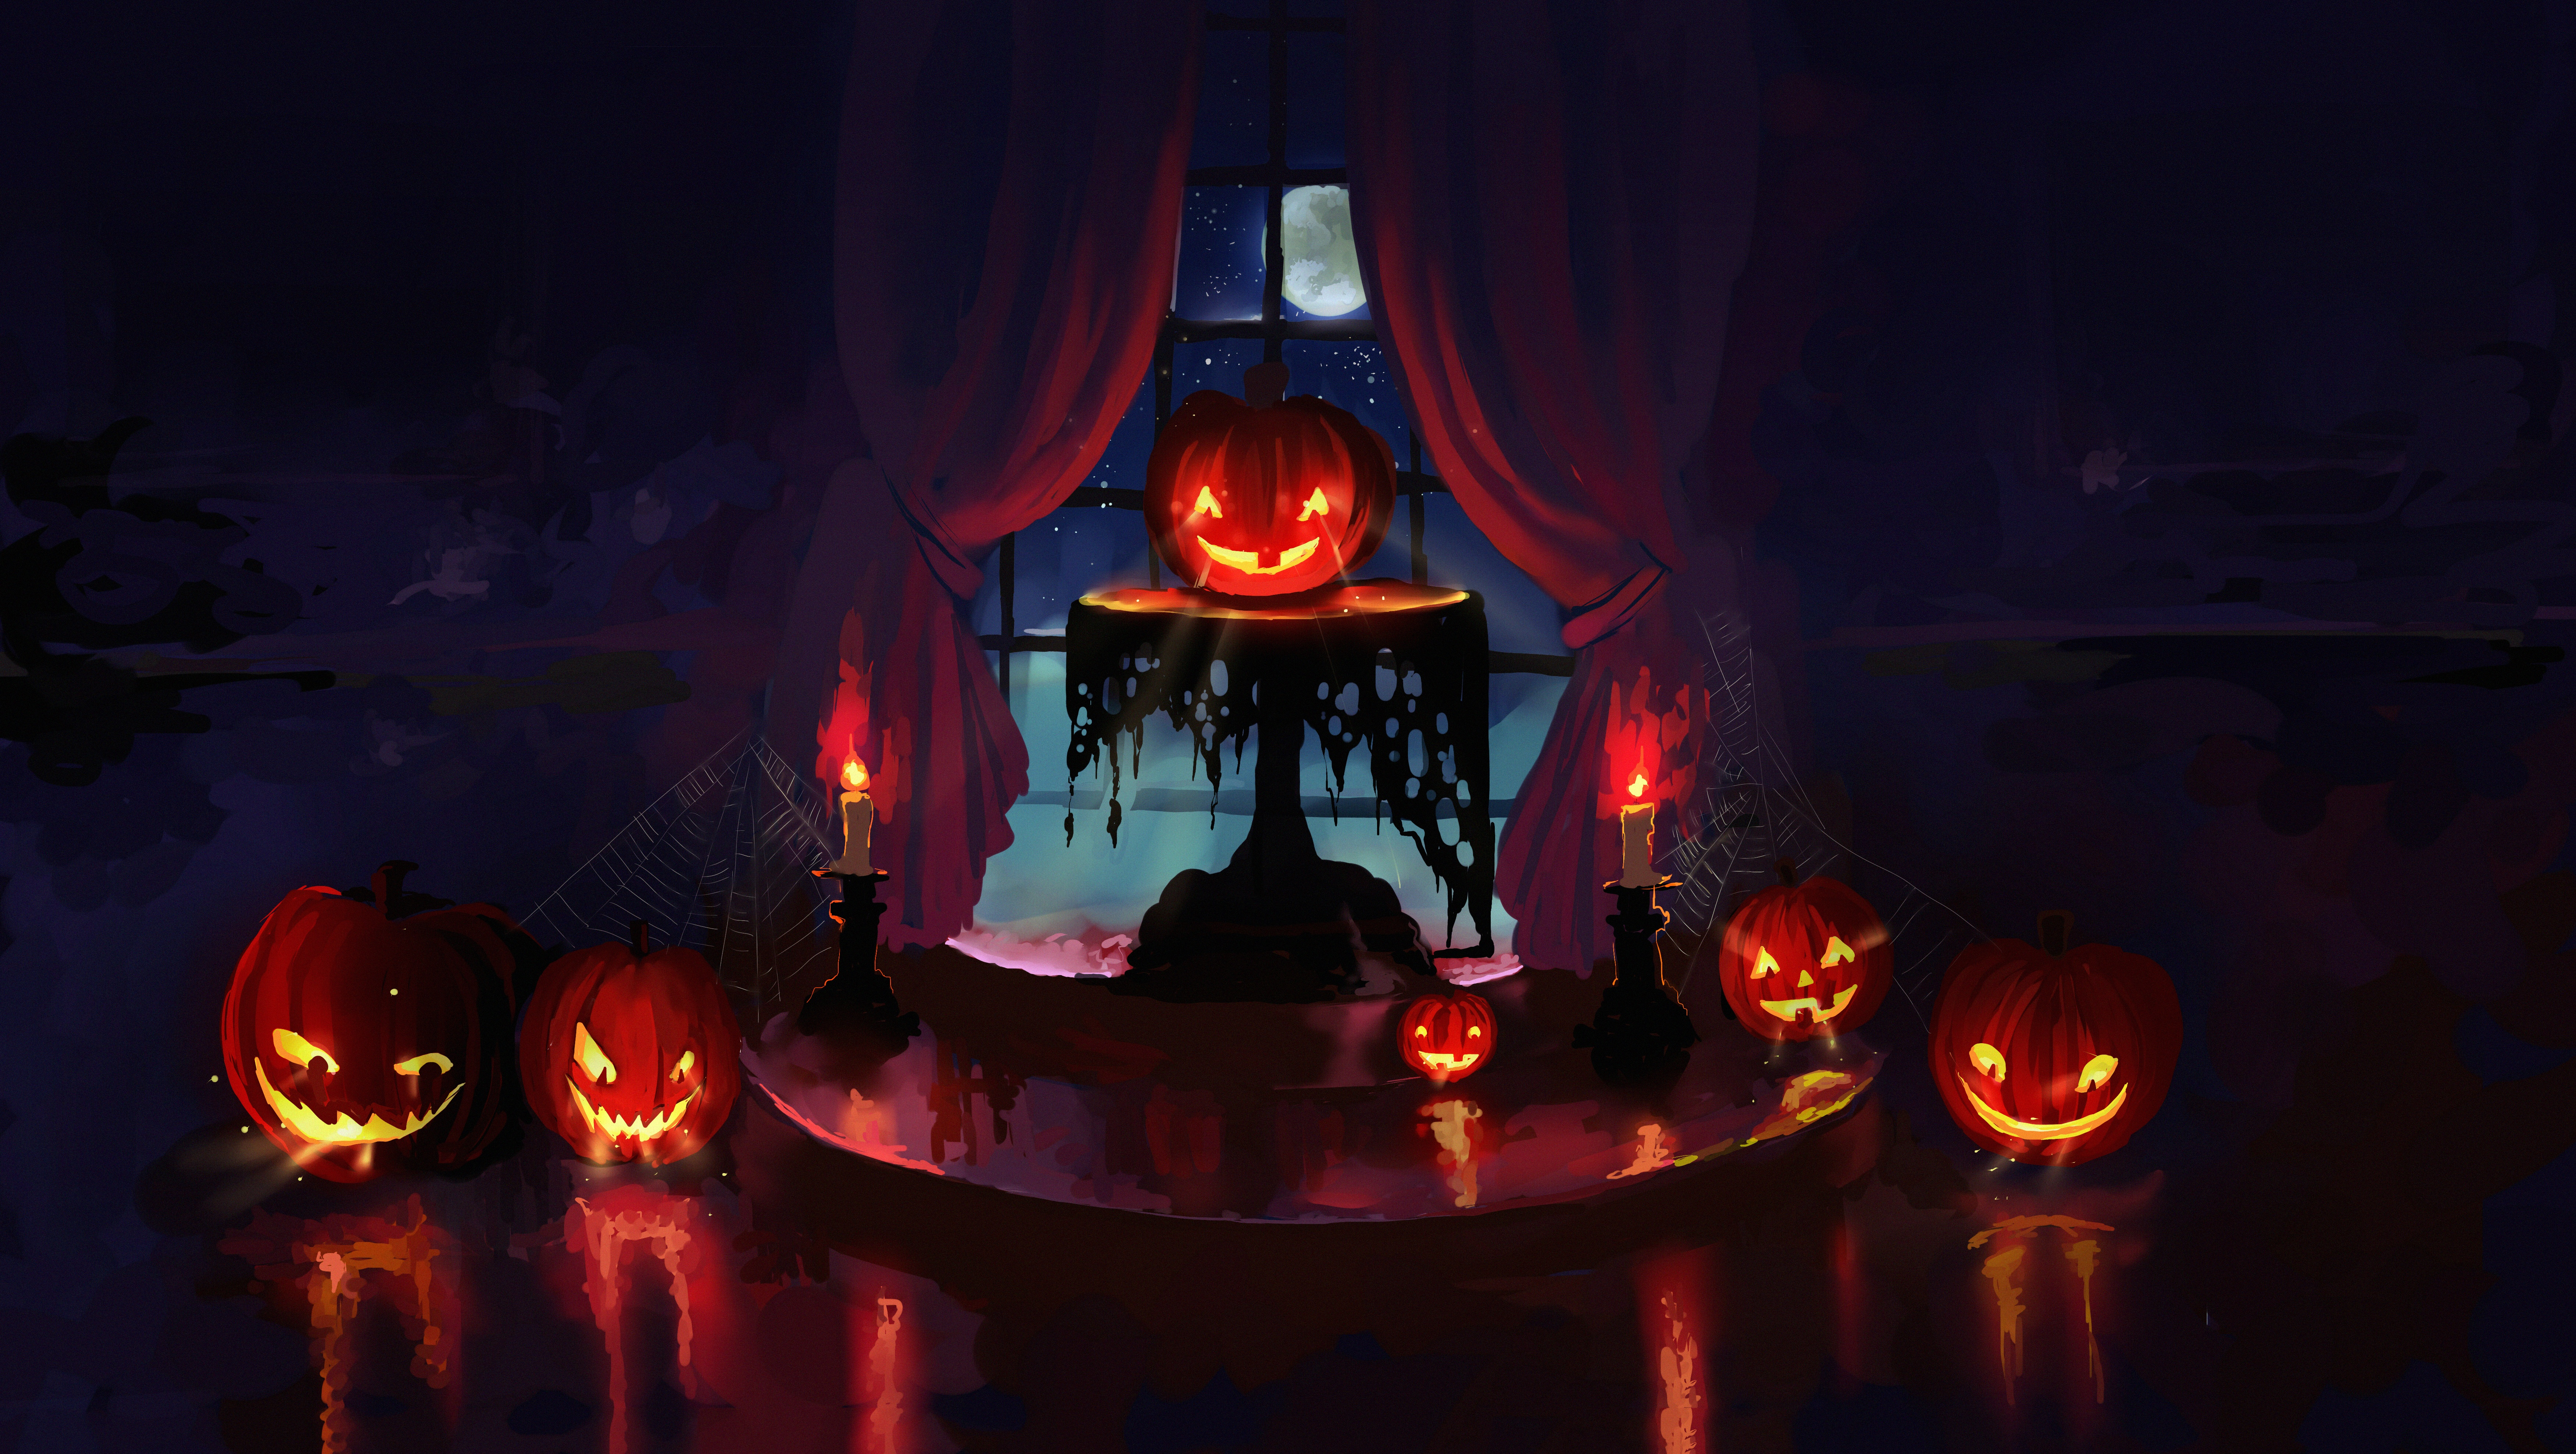 144161 download wallpaper Pumpkin, Art, Halloween, Night, Candles screensavers and pictures for free